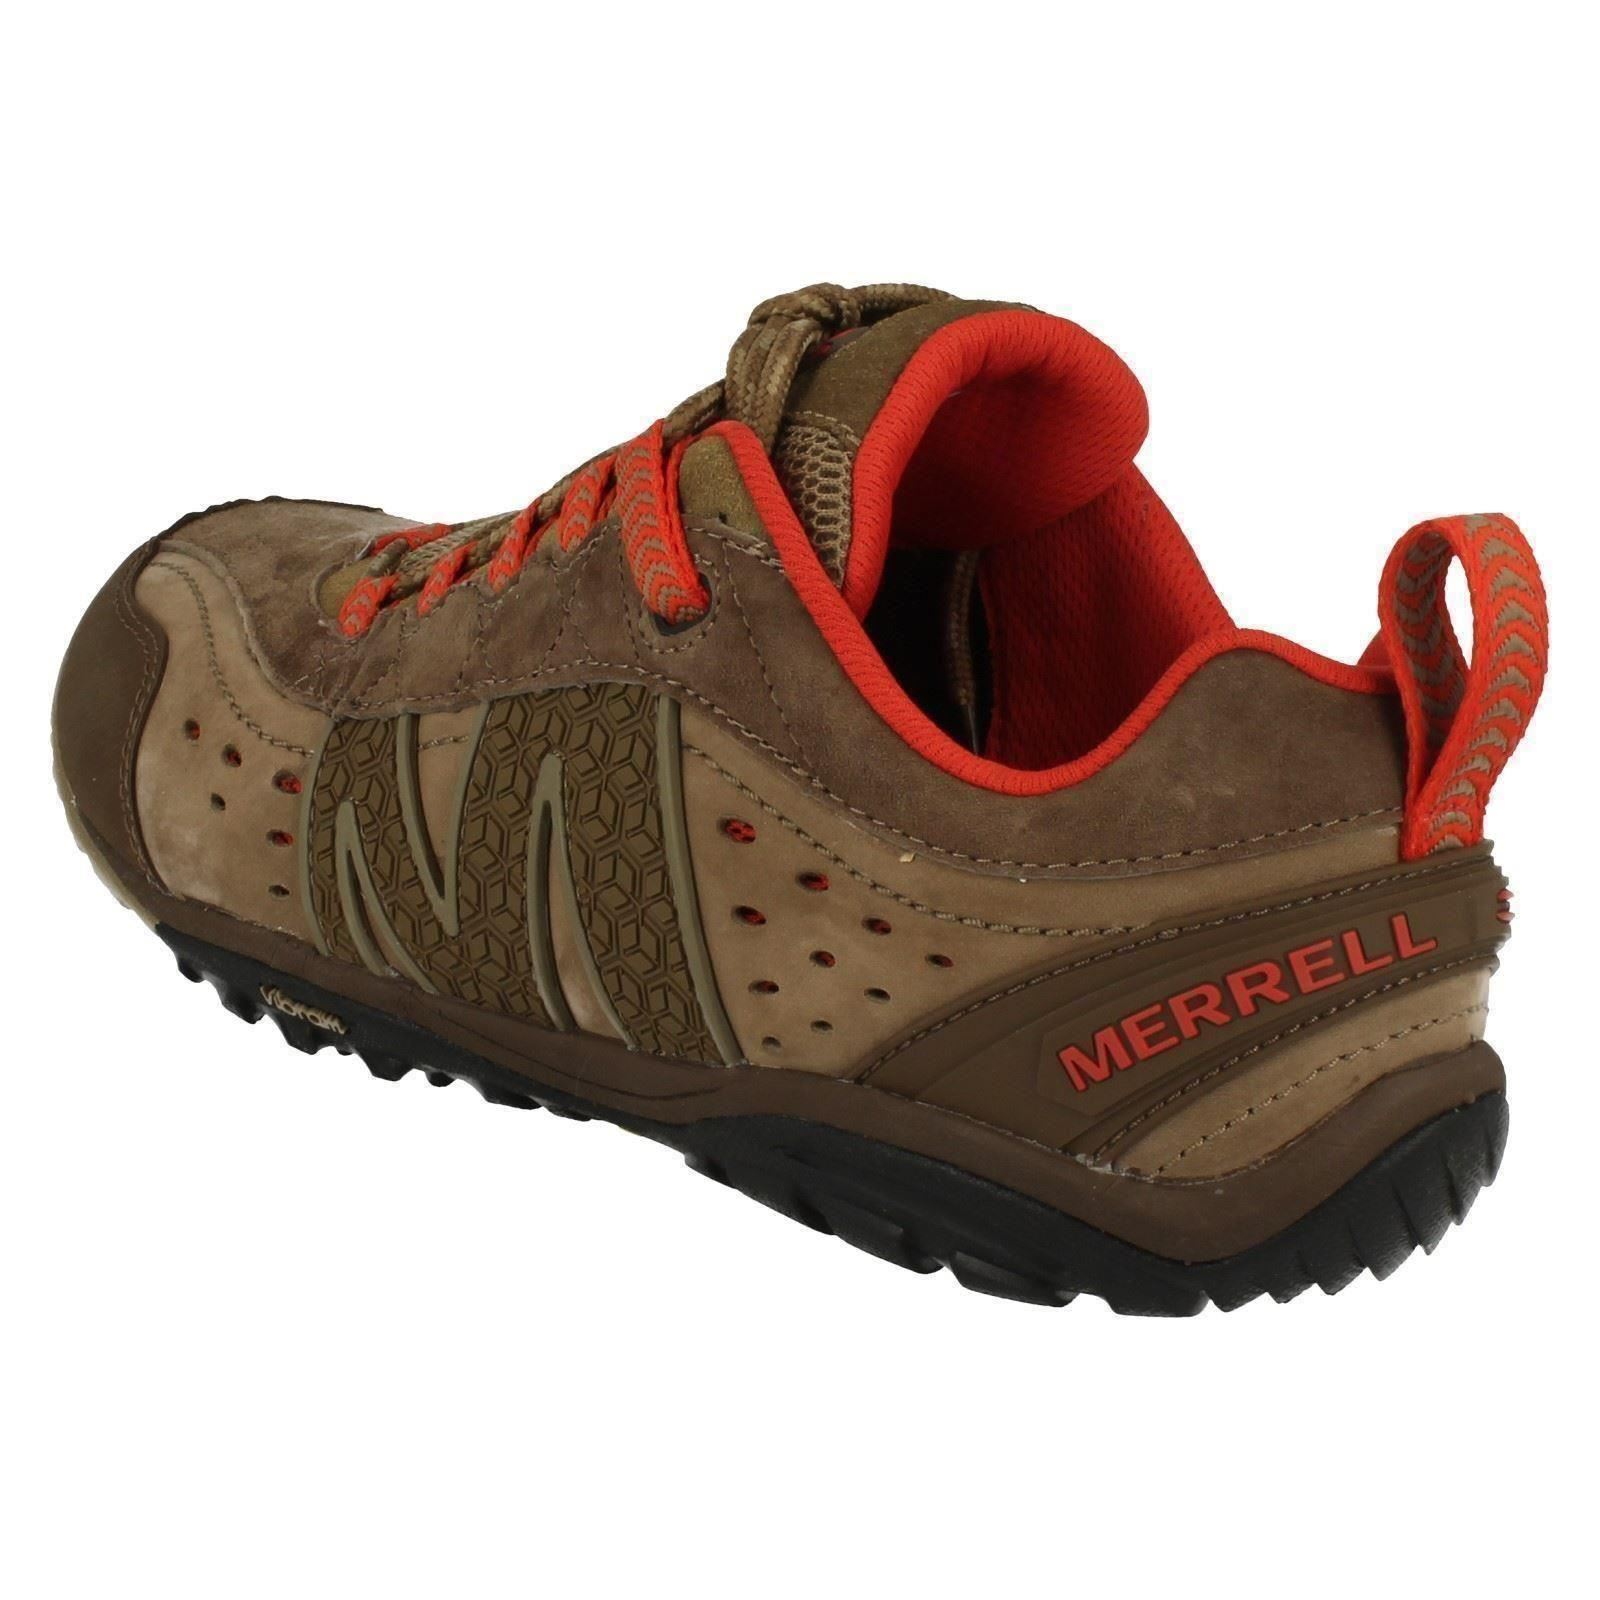 Mens Merrell Lace Up Walking Shoes Venture Glove J68813